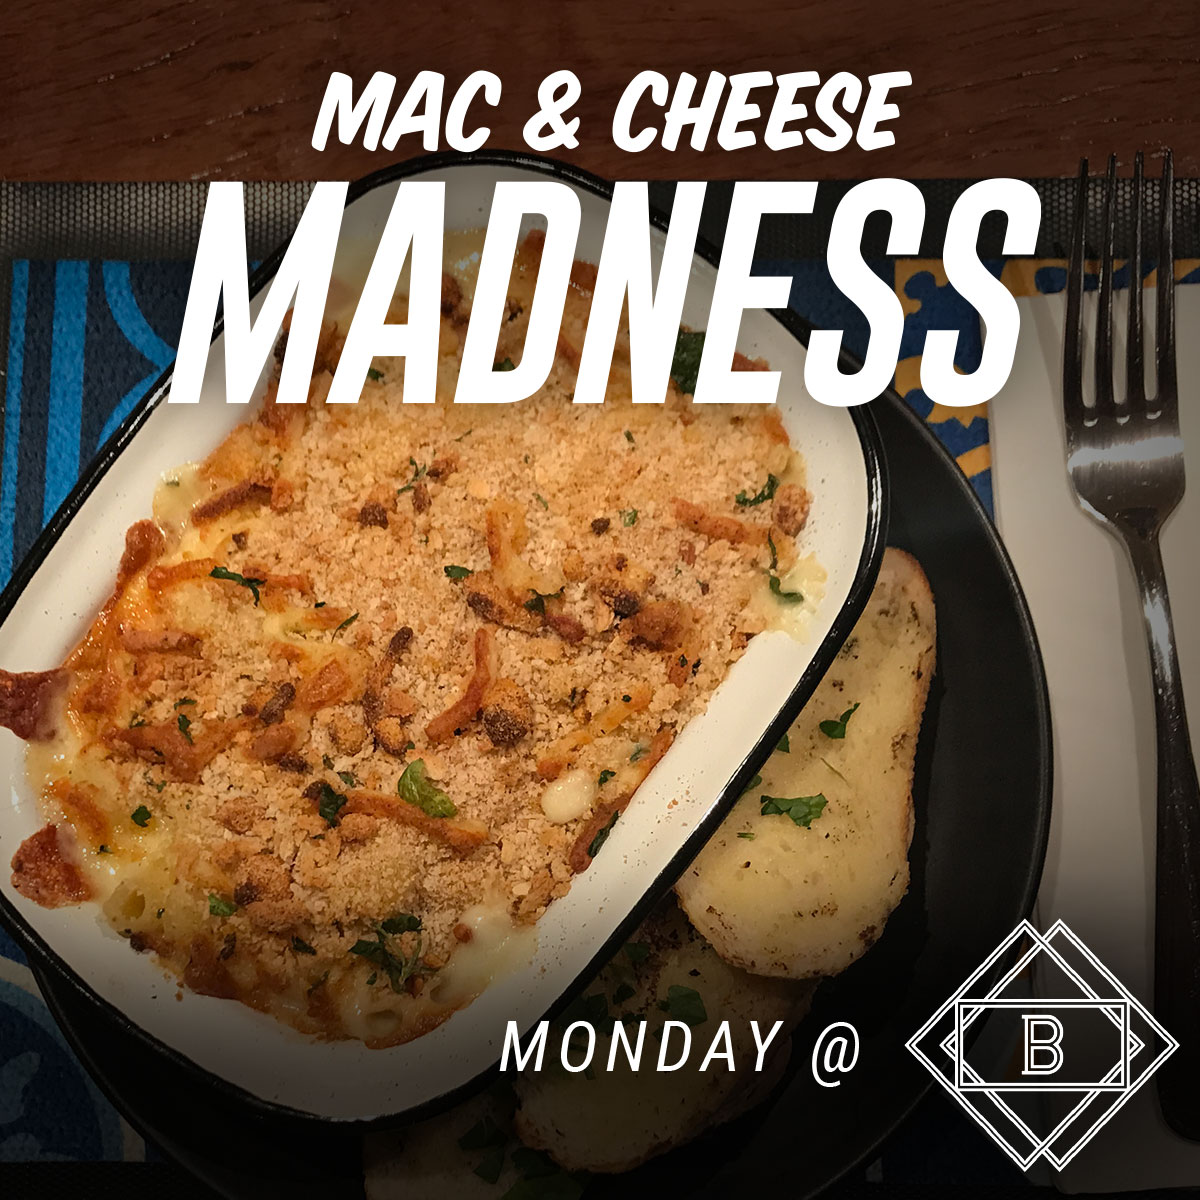 Mac & Cheese Madness